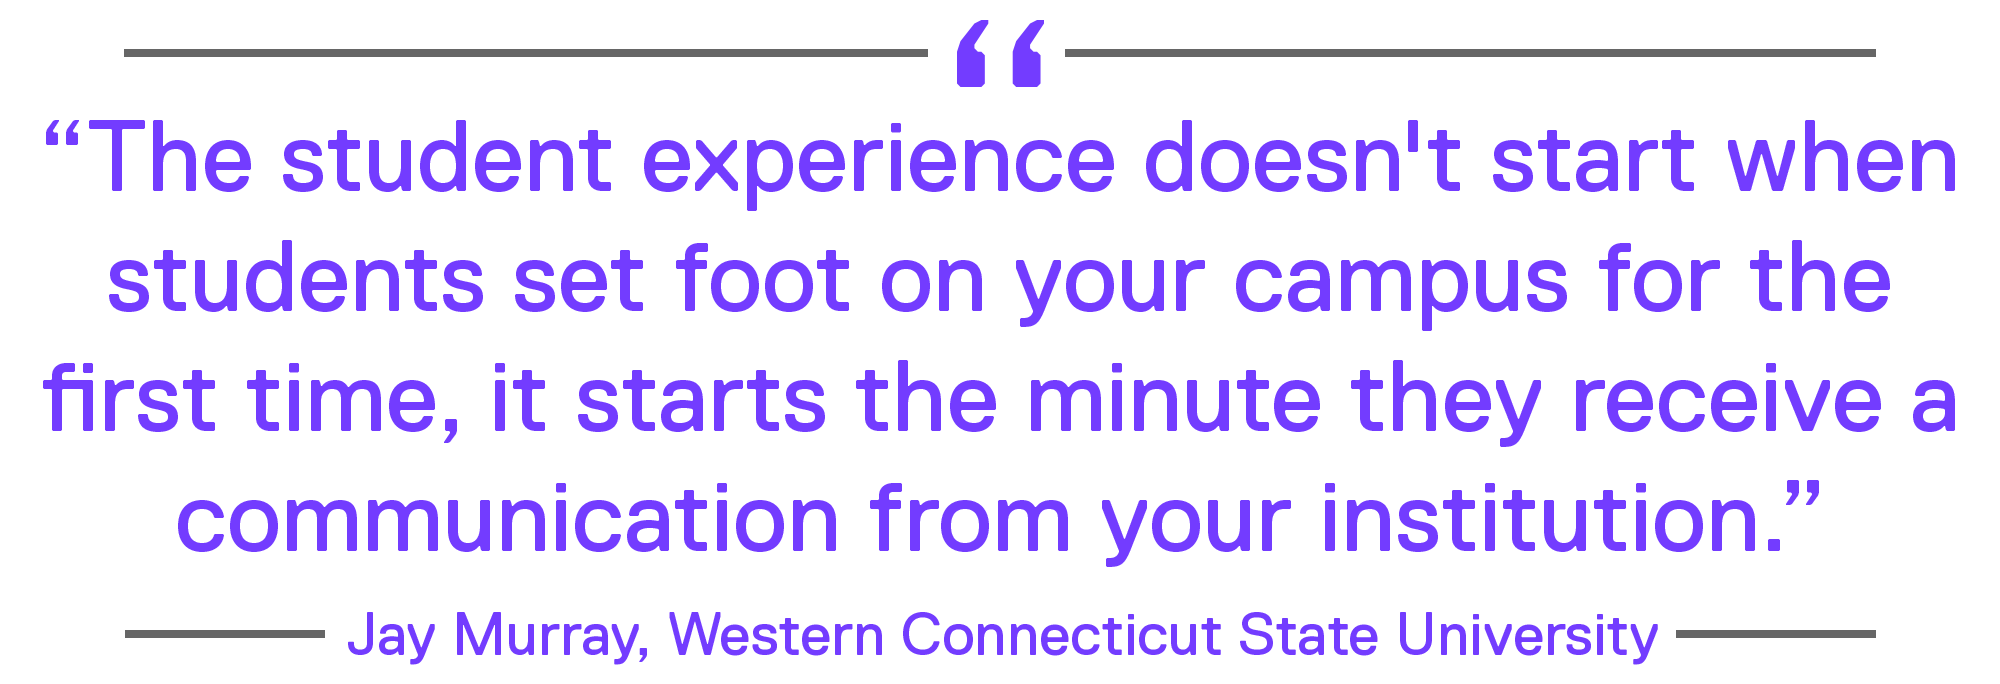 """""""The student experience doesn't start when students set foot on your campus for the first time, it starts the minute they receive a communication from your institution."""" – Jay Murray, Western Connecticut State University"""